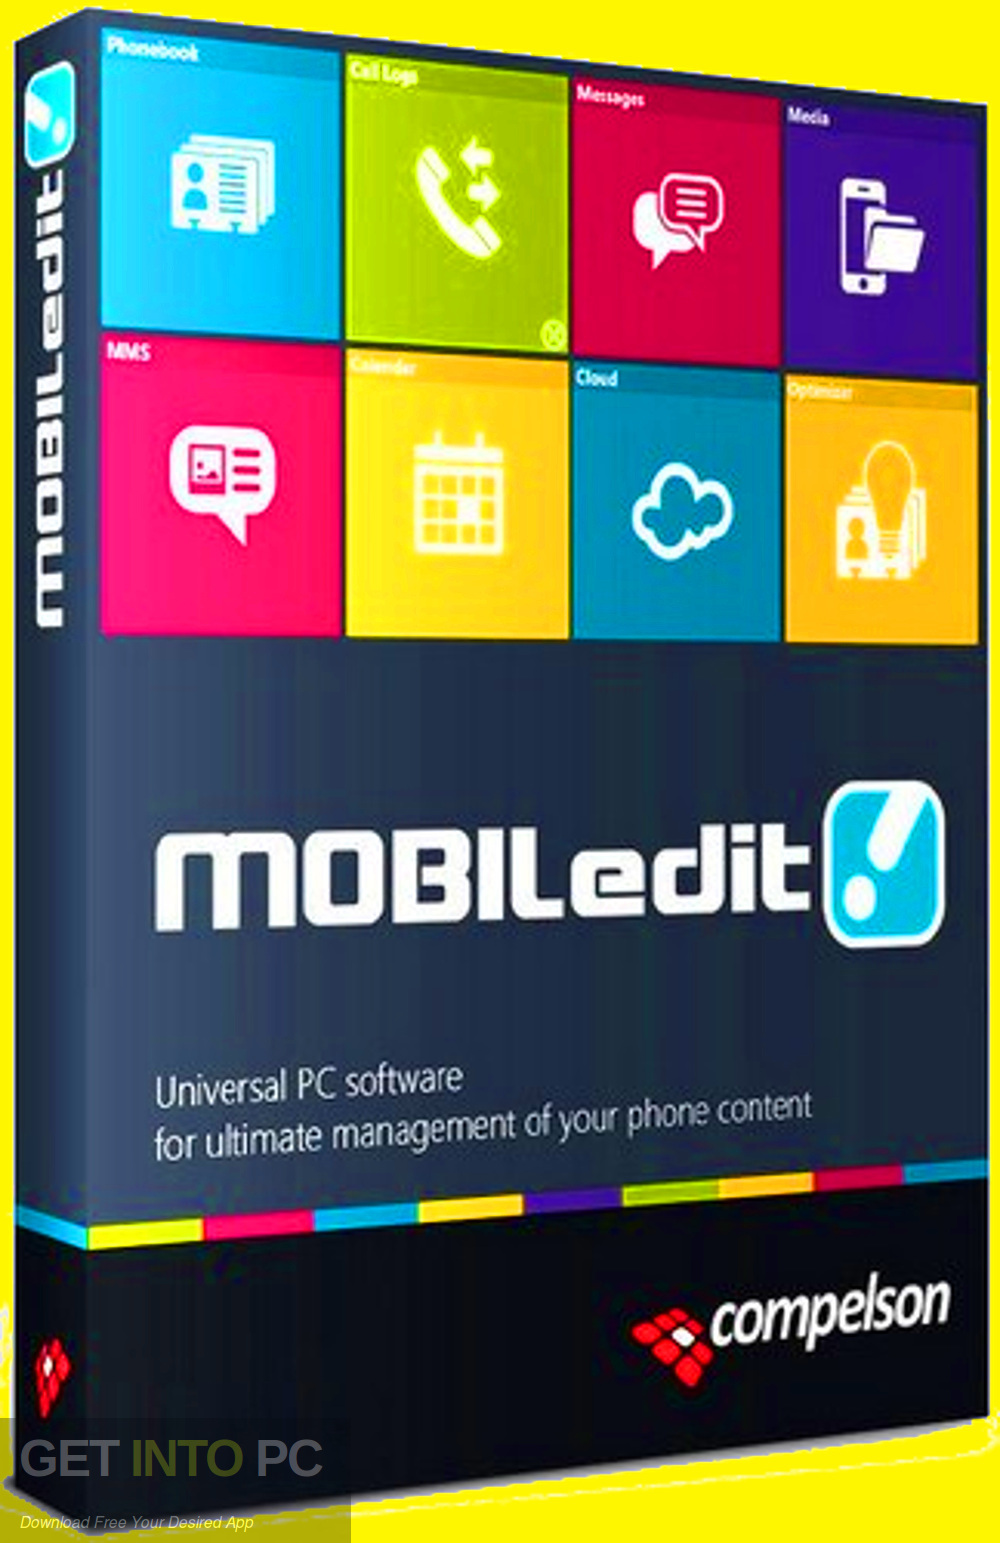 MOBILedit Enterprise 2019 Free Download-GetintoPC.com